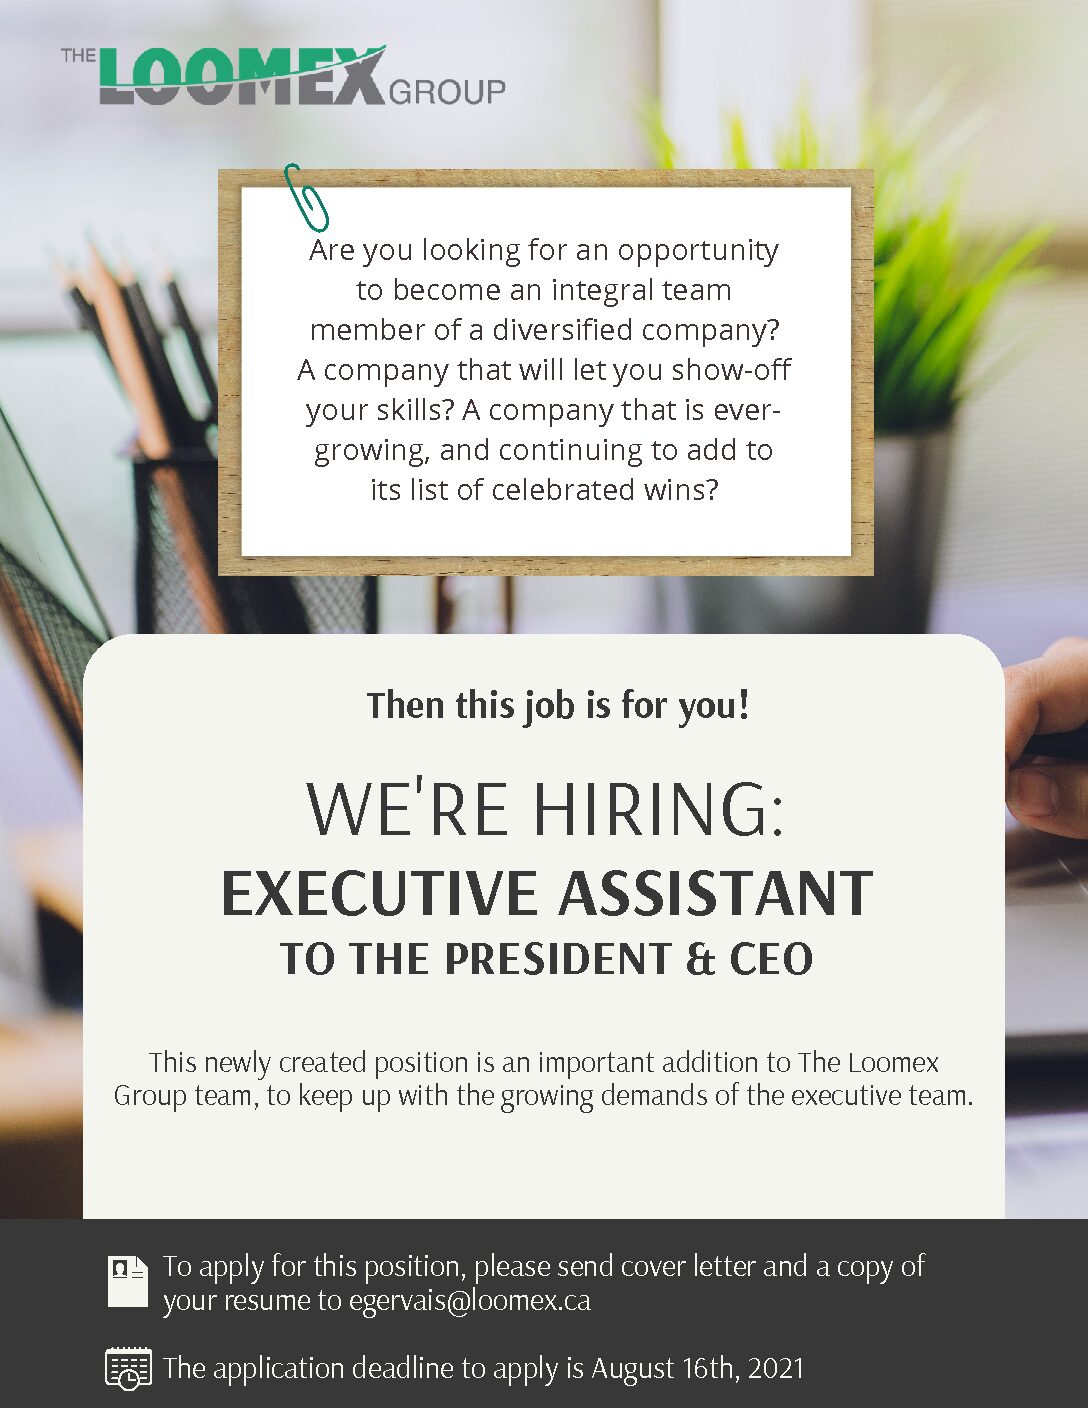 We're Hiring: Executive Assistant to the President & CEO